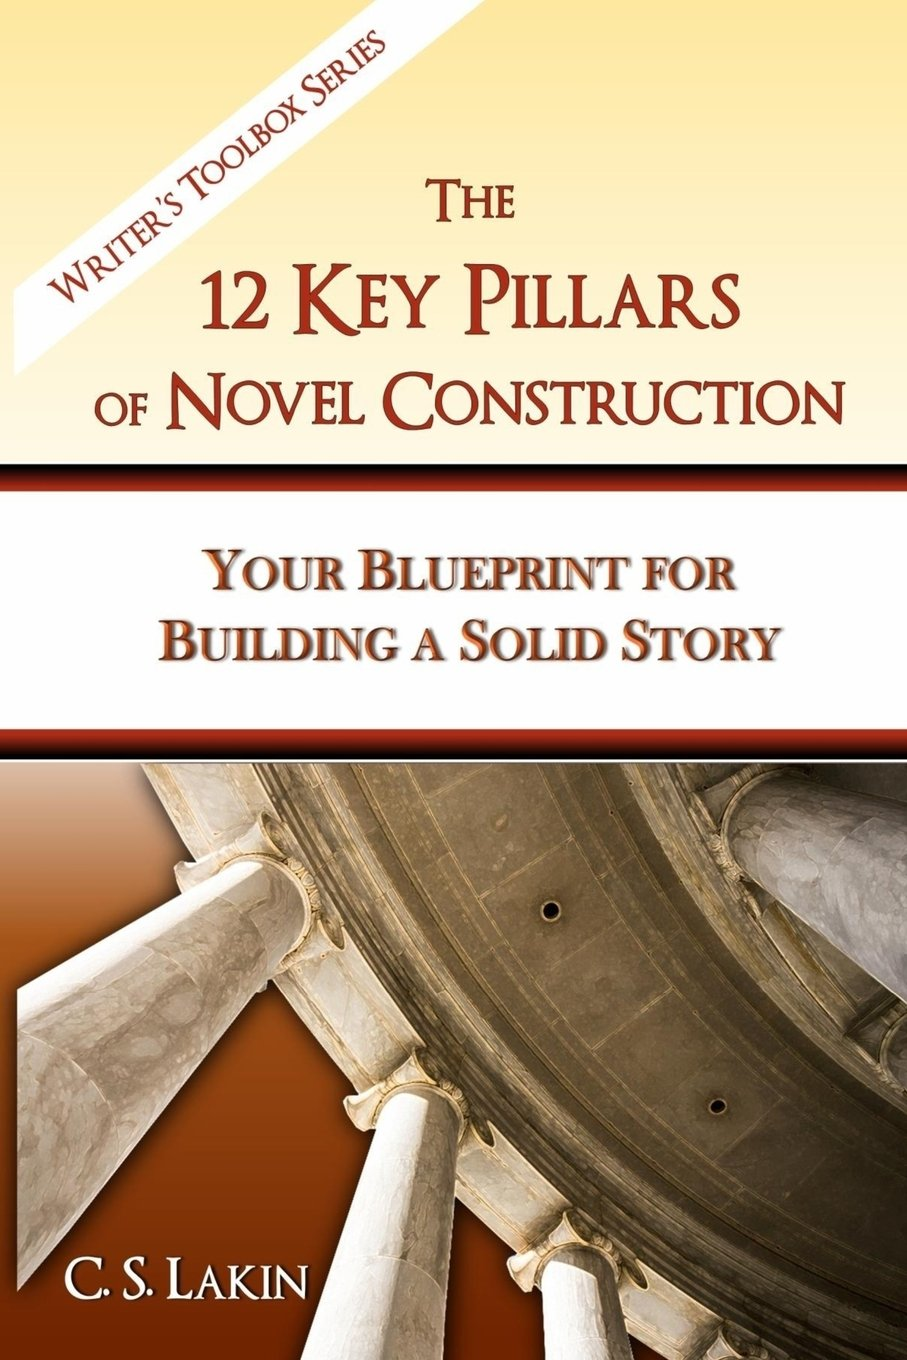 The 12 key pillars of novel construction your blueprint for the 12 key pillars of novel construction your blueprint for building a strong story the writers toolbox series c s lakin 9780991389476 amazon malvernweather Images